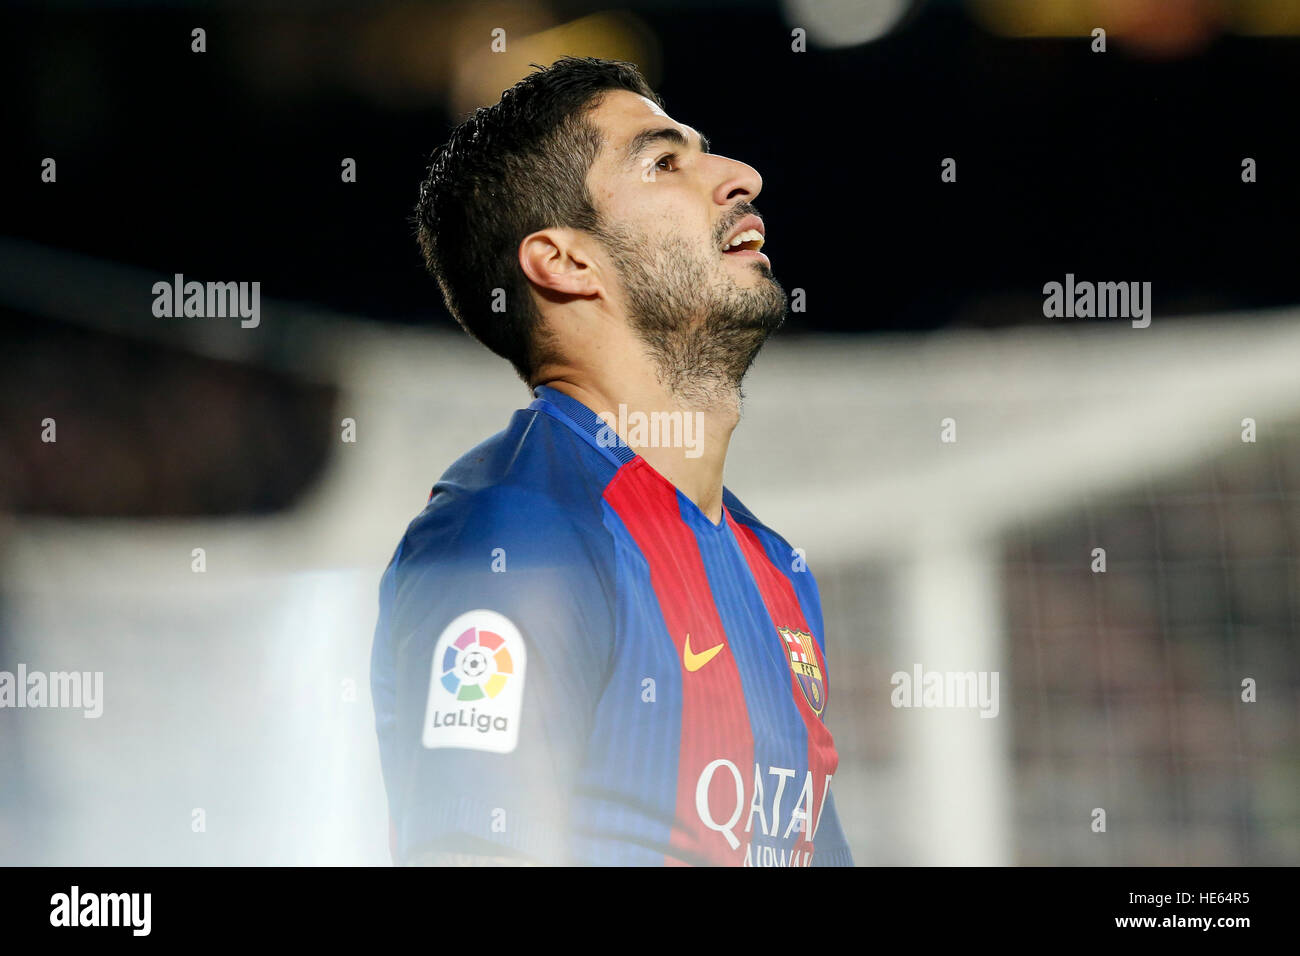 Barcelona, Spain. 18th Dec, 2016. Barcelona's Luis Suarez reacts during the Spanish league football match between - Stock Image